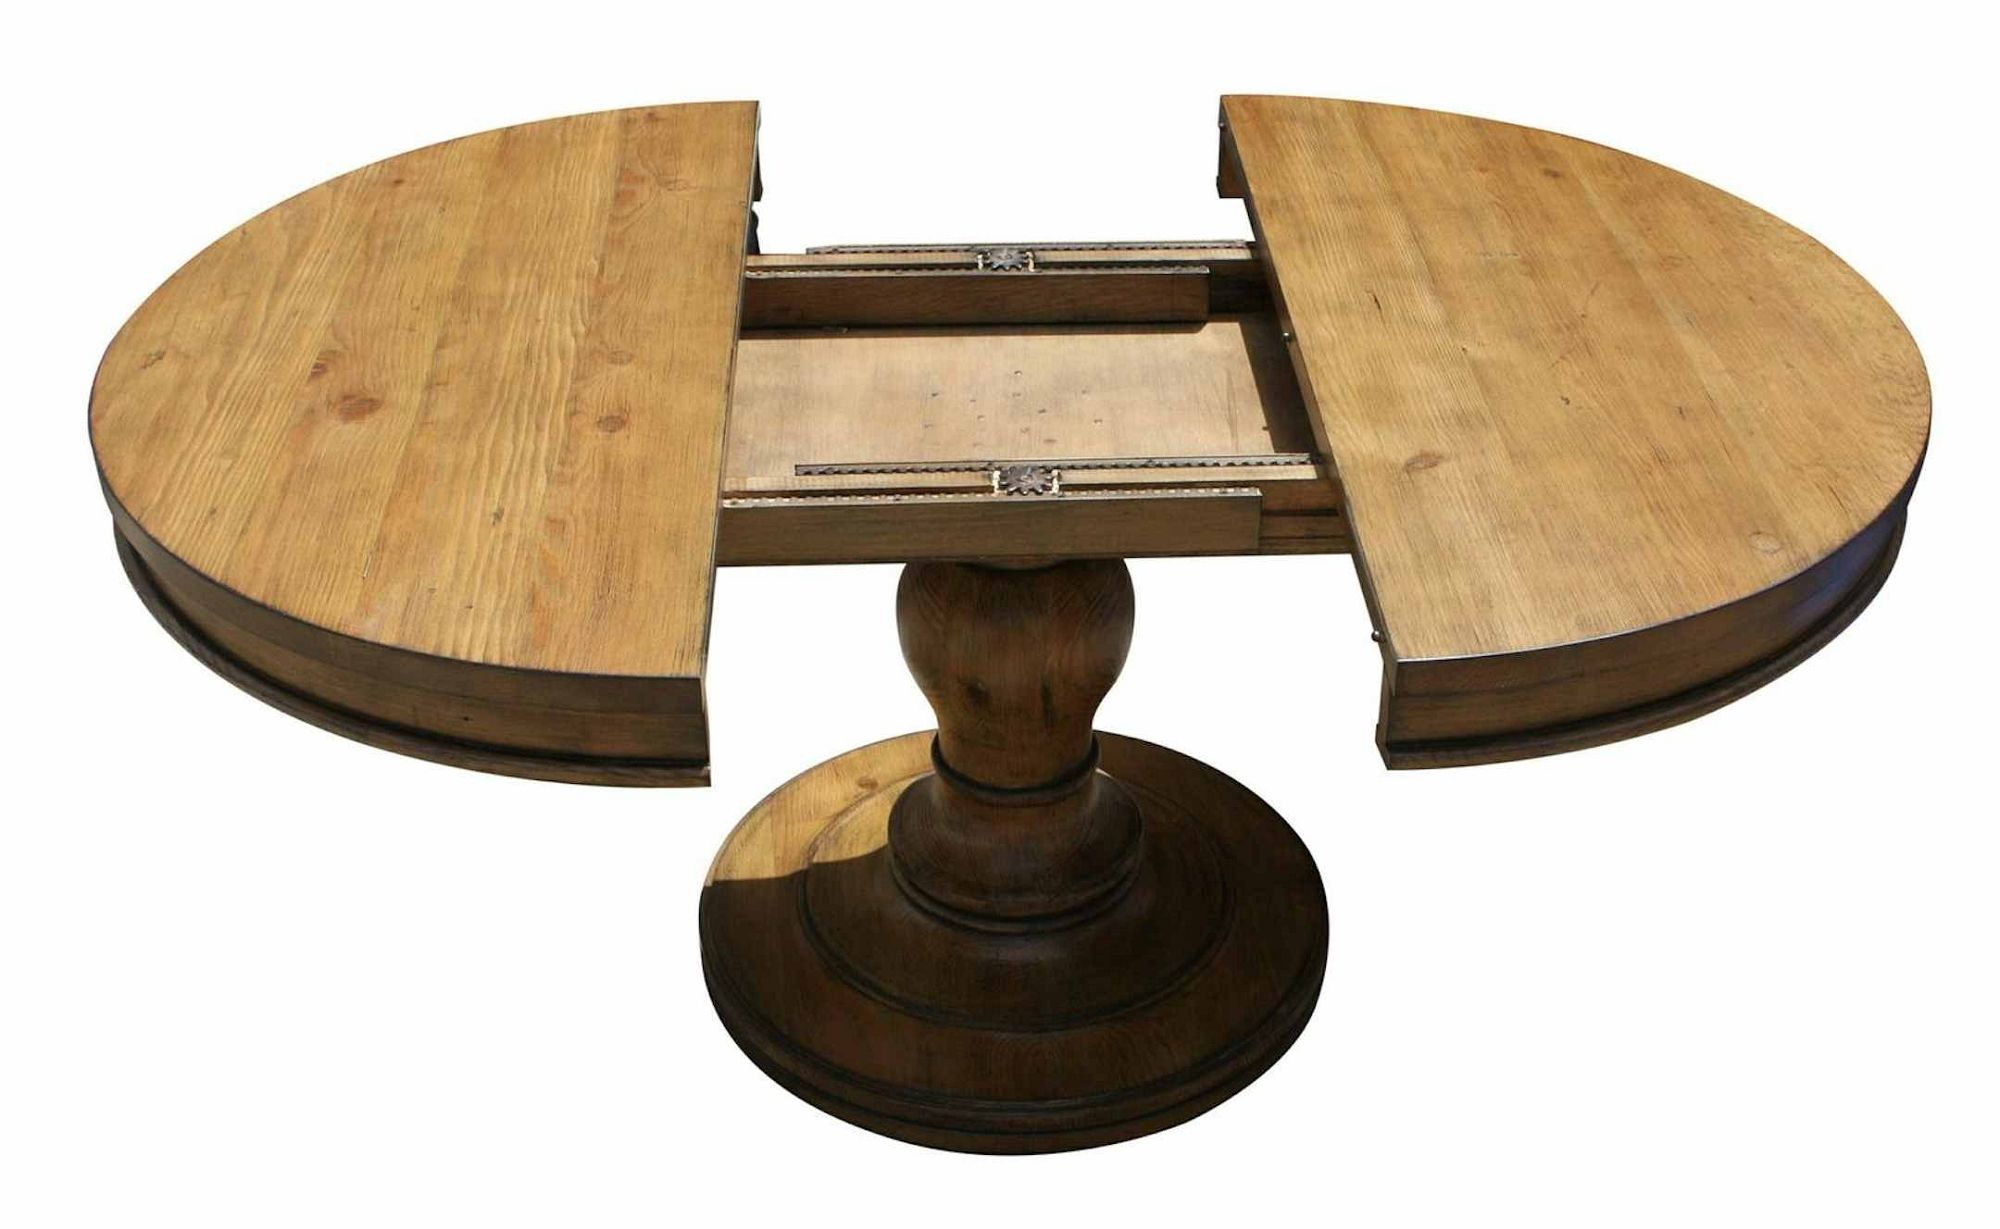 Round Pedestal Dining Table With Extension Leaf Kitchen